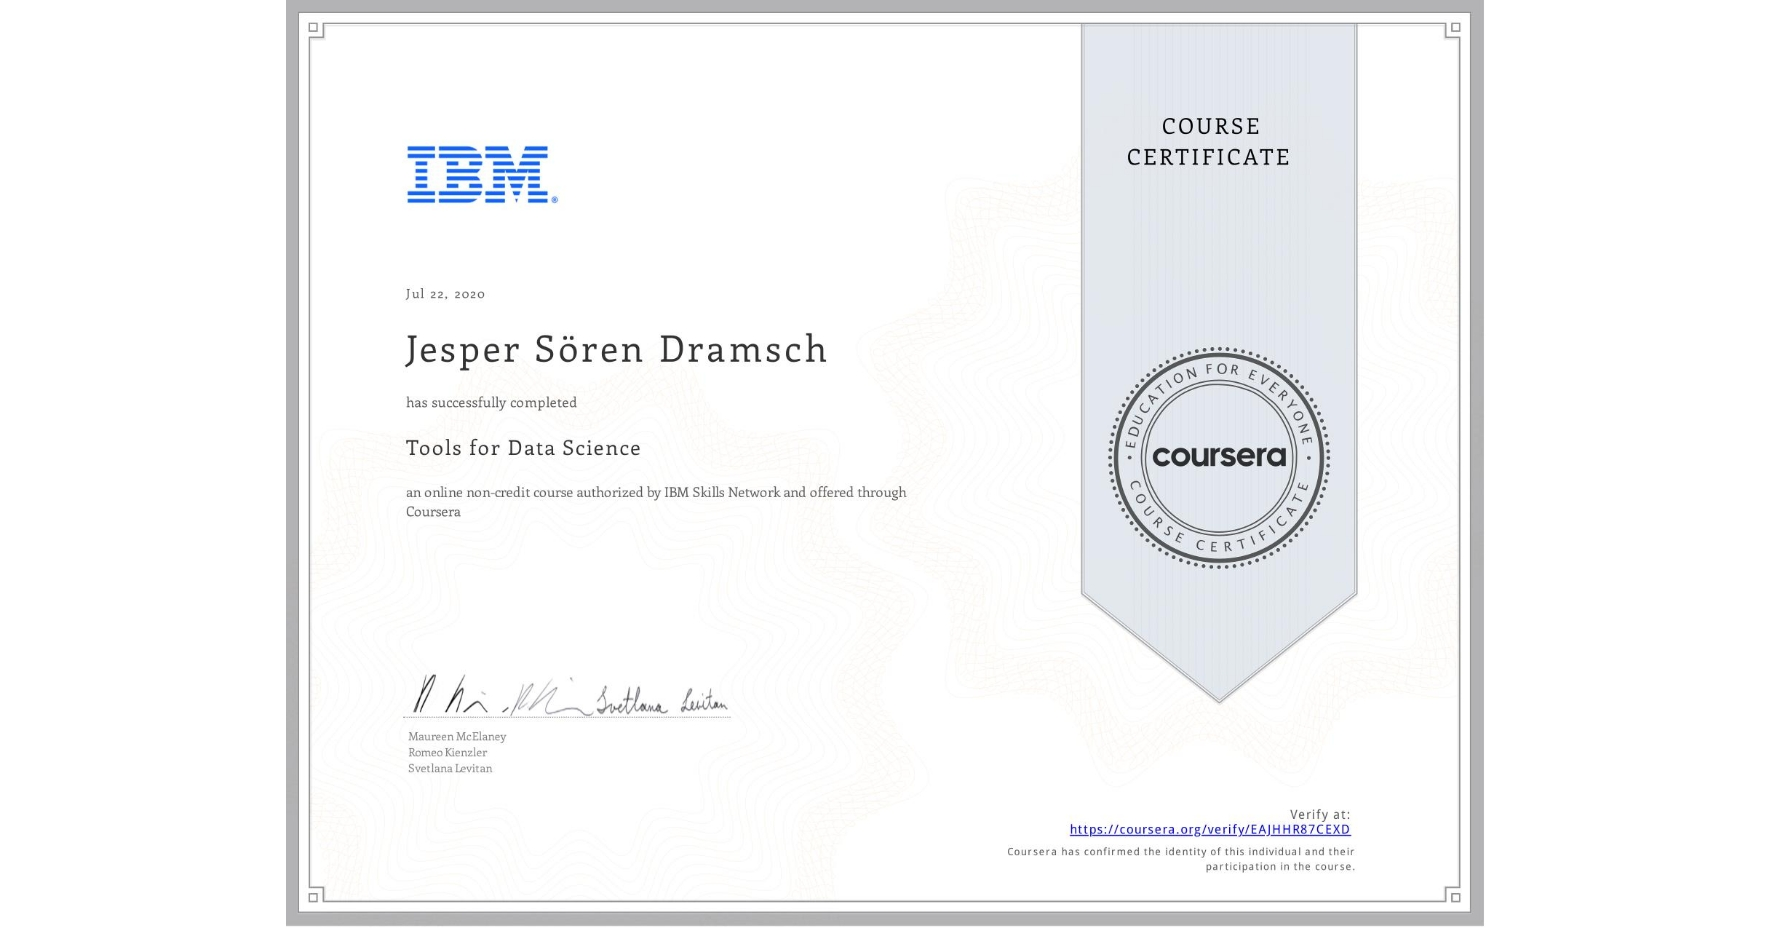 View certificate for Jesper Sören Dramsch, Tools for Data Science, an online non-credit course authorized by IBM and offered through Coursera